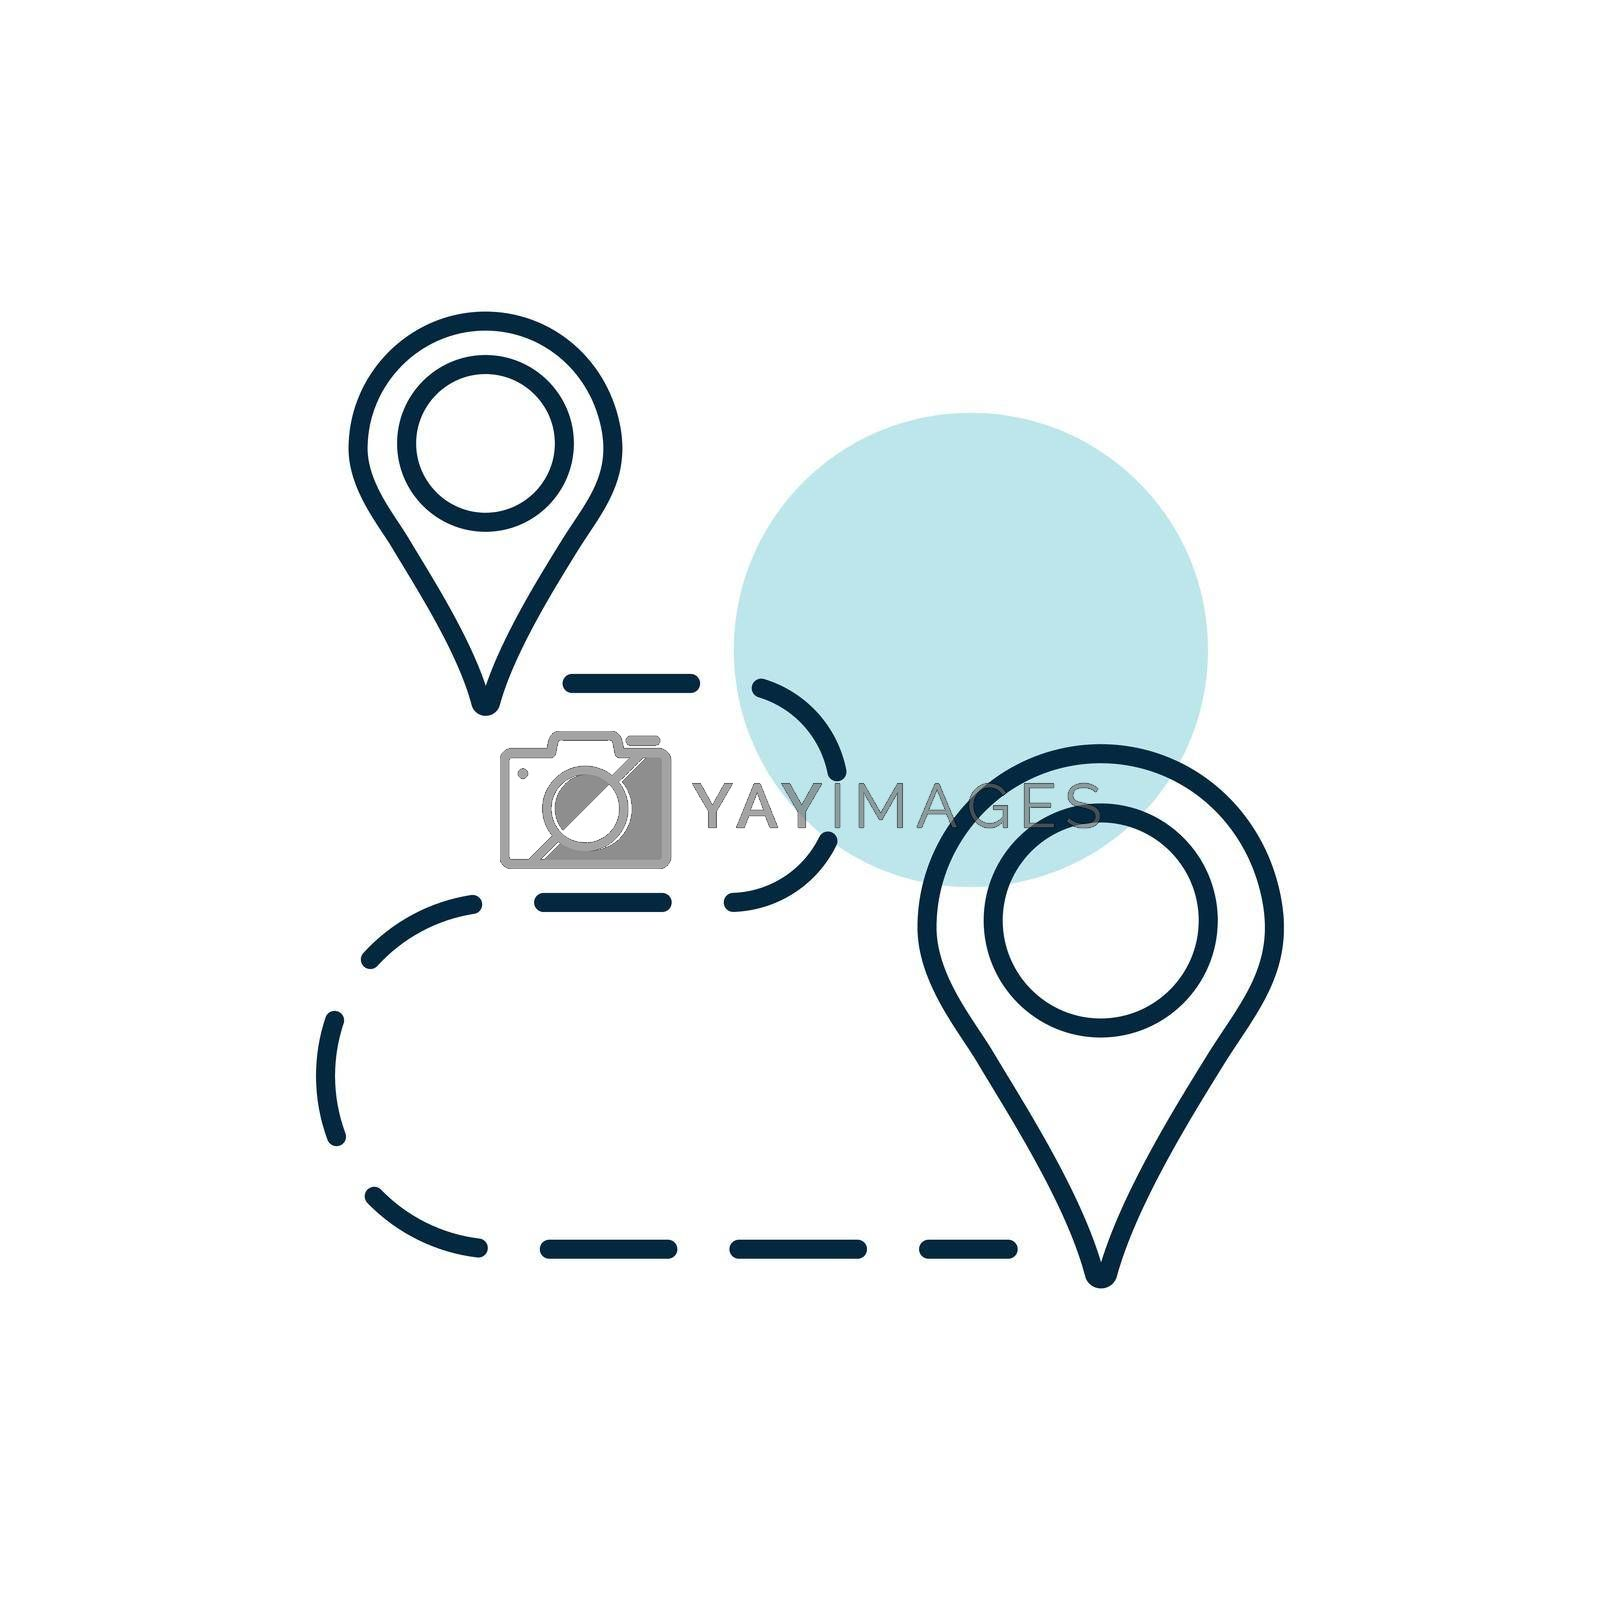 Route vector icon. Navigation sign. Graph symbol for travel and tourism web site and apps design, logo, app, UI